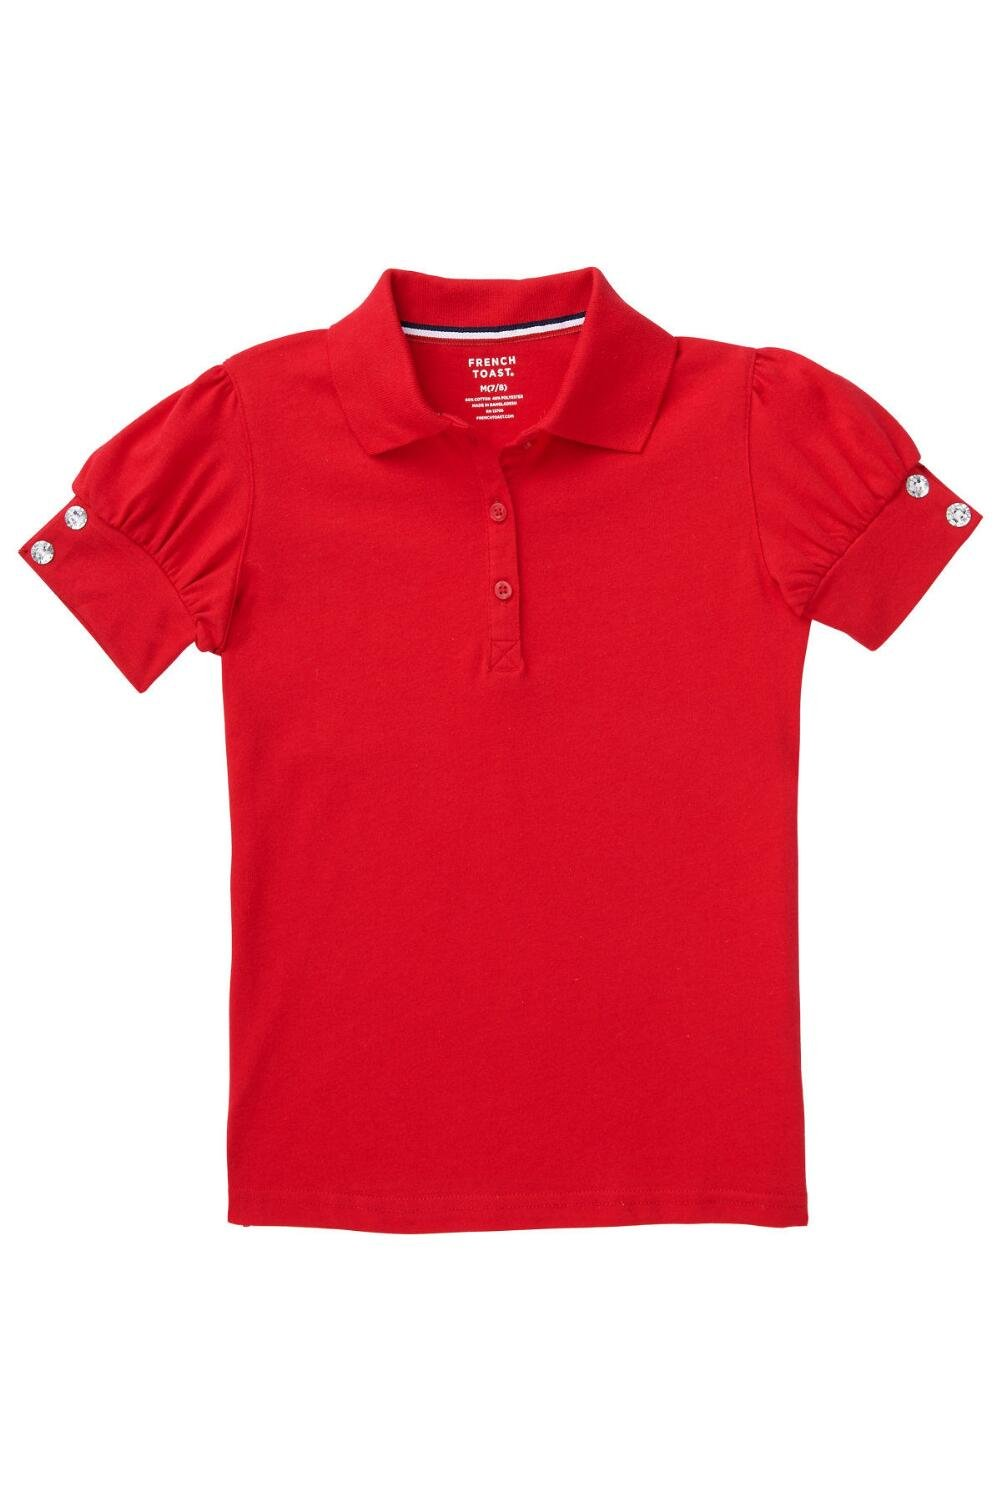 French Toast Little Girls Puff Sleeve Polo Shirt, Red, Small/6/6x